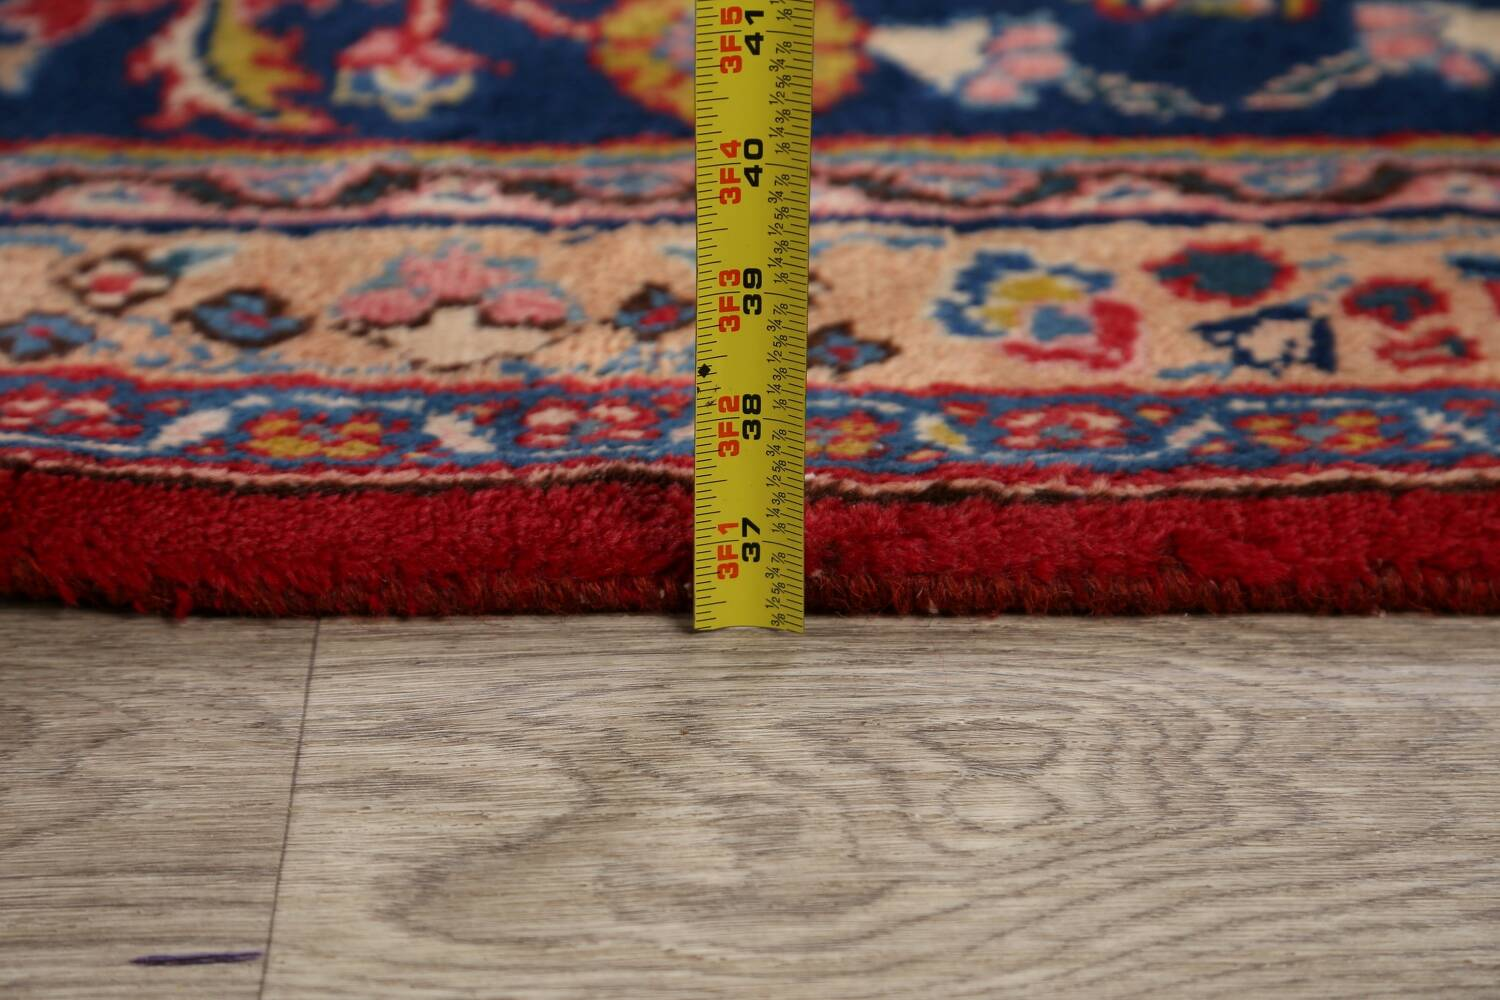 Vintage Floral Red Mashad Persian Area Rug 9x13 image 22